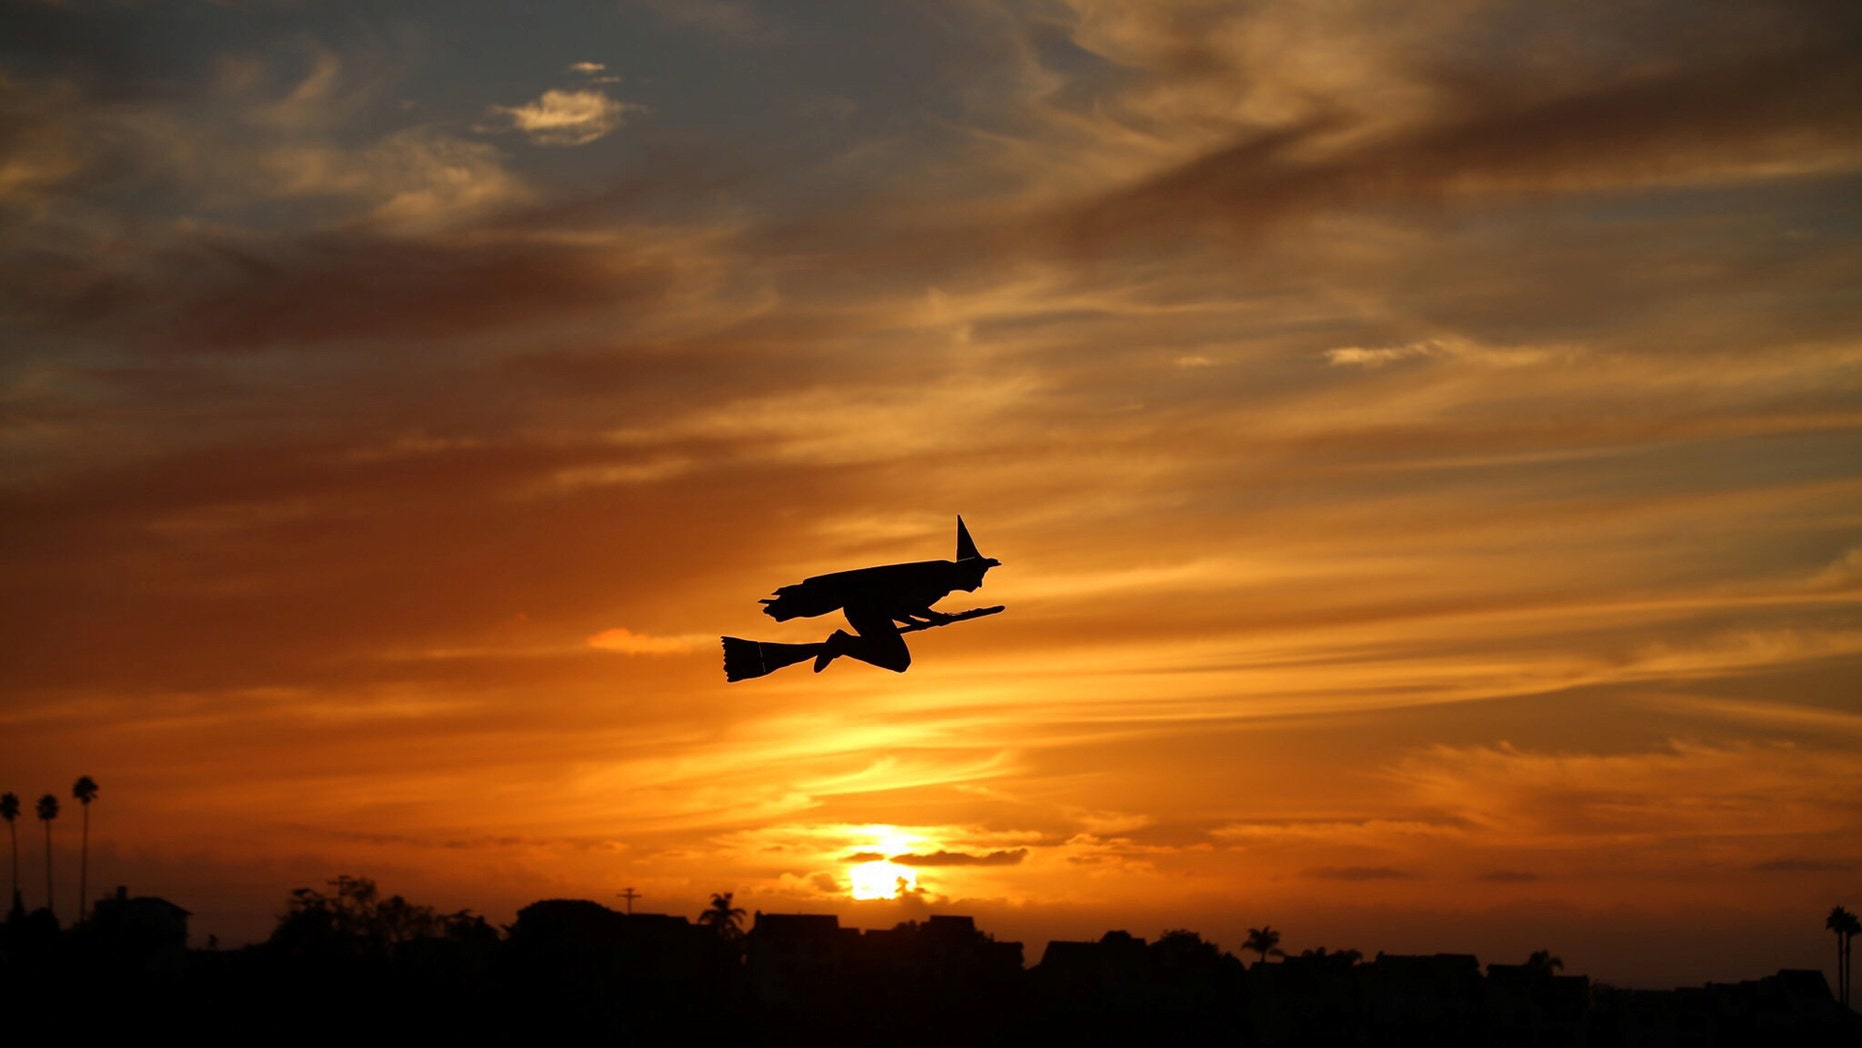 File photo - A remote-controlled plane in the form of a witch flies over a neighborhood as the sun sets during Halloween in Encinitas, California, U.S. Oct. 31,2016. (REUTERS/Mike Blake)